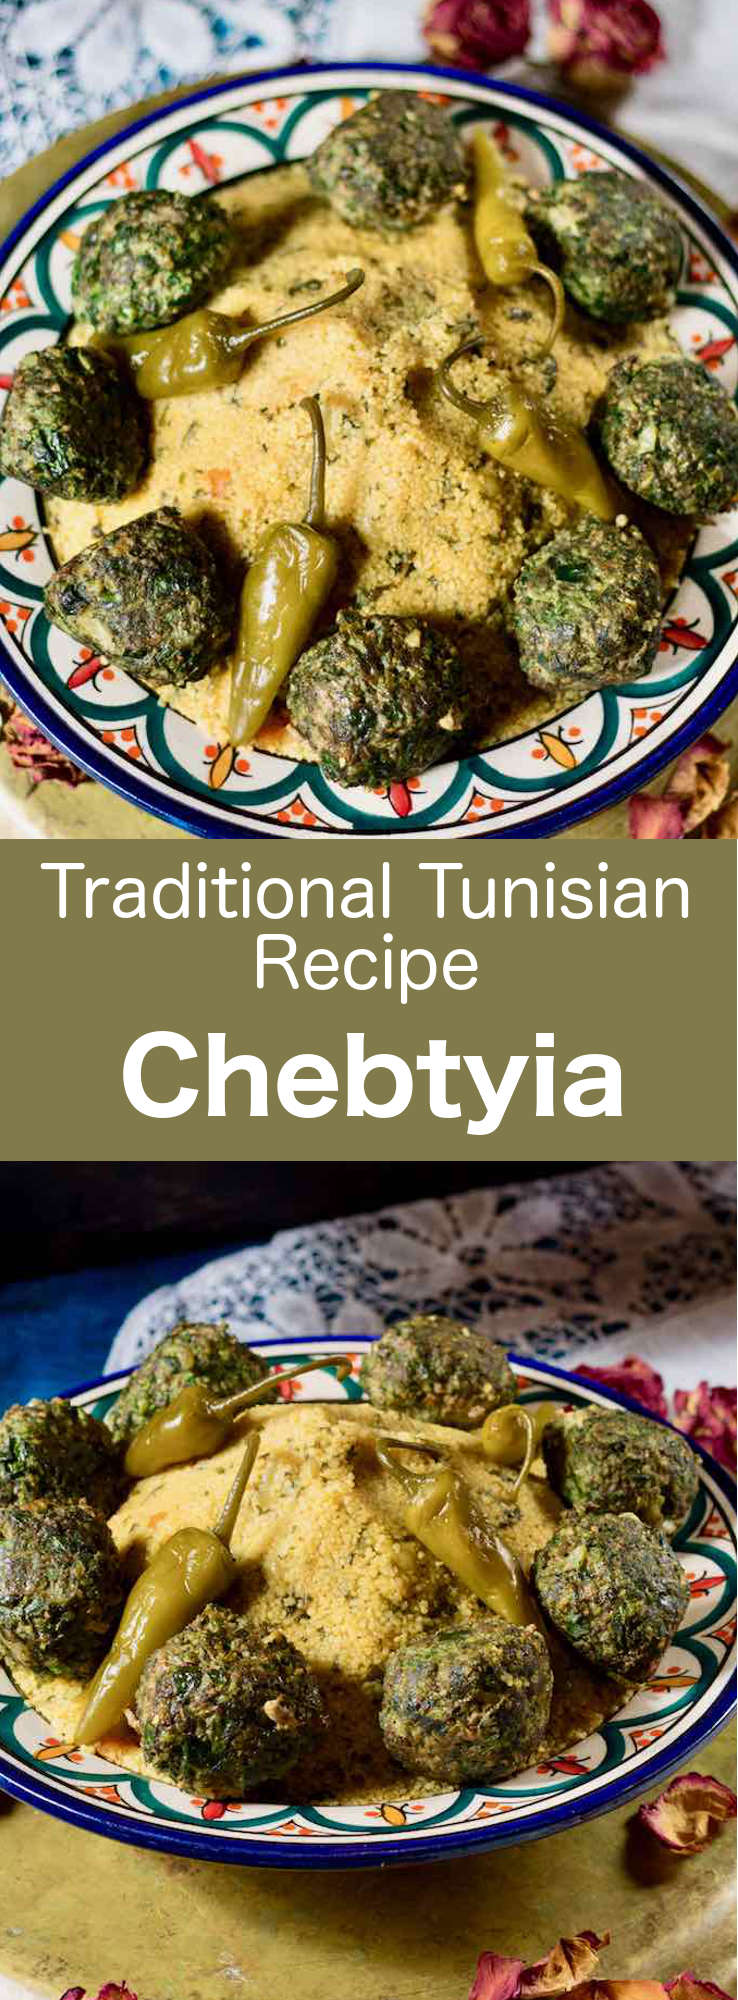 Chebtiya are delicious dill-scented Tunisian meatballs that can be enjoyed by themselves, with a sauce or served over couscous. #Tunisia #Tunisian #TunisianCuisine #TunisianRecipe #NorthAfricanCuisine #NorthAfricanRecipe #NorthAfrica #Maghreb #MaghrebCuisine #WorldCuisine #196flavors